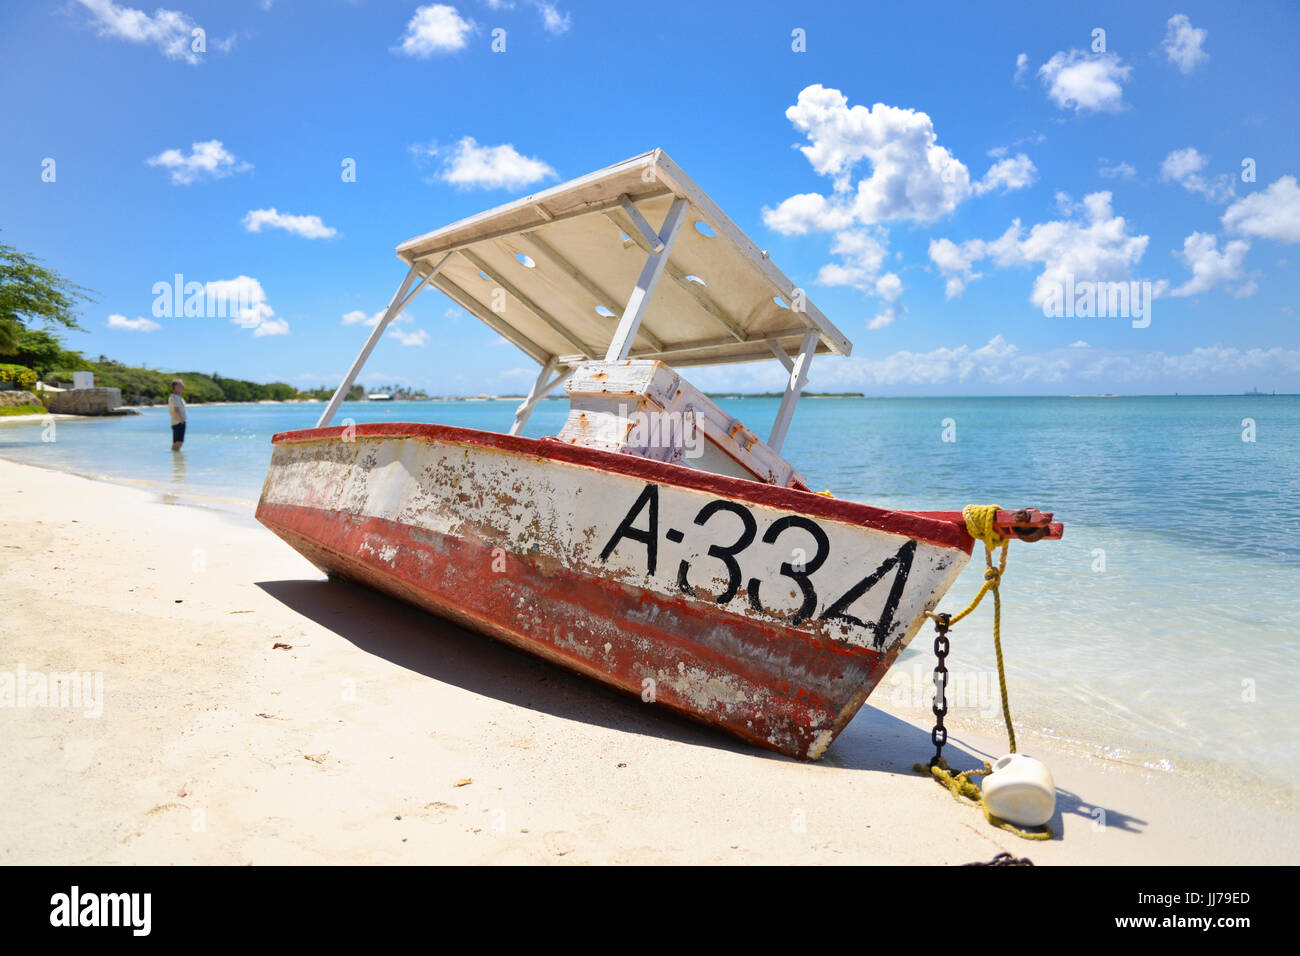 shipwrecked fishing boat beached on a beach in aruba, caribbean - Stock Image